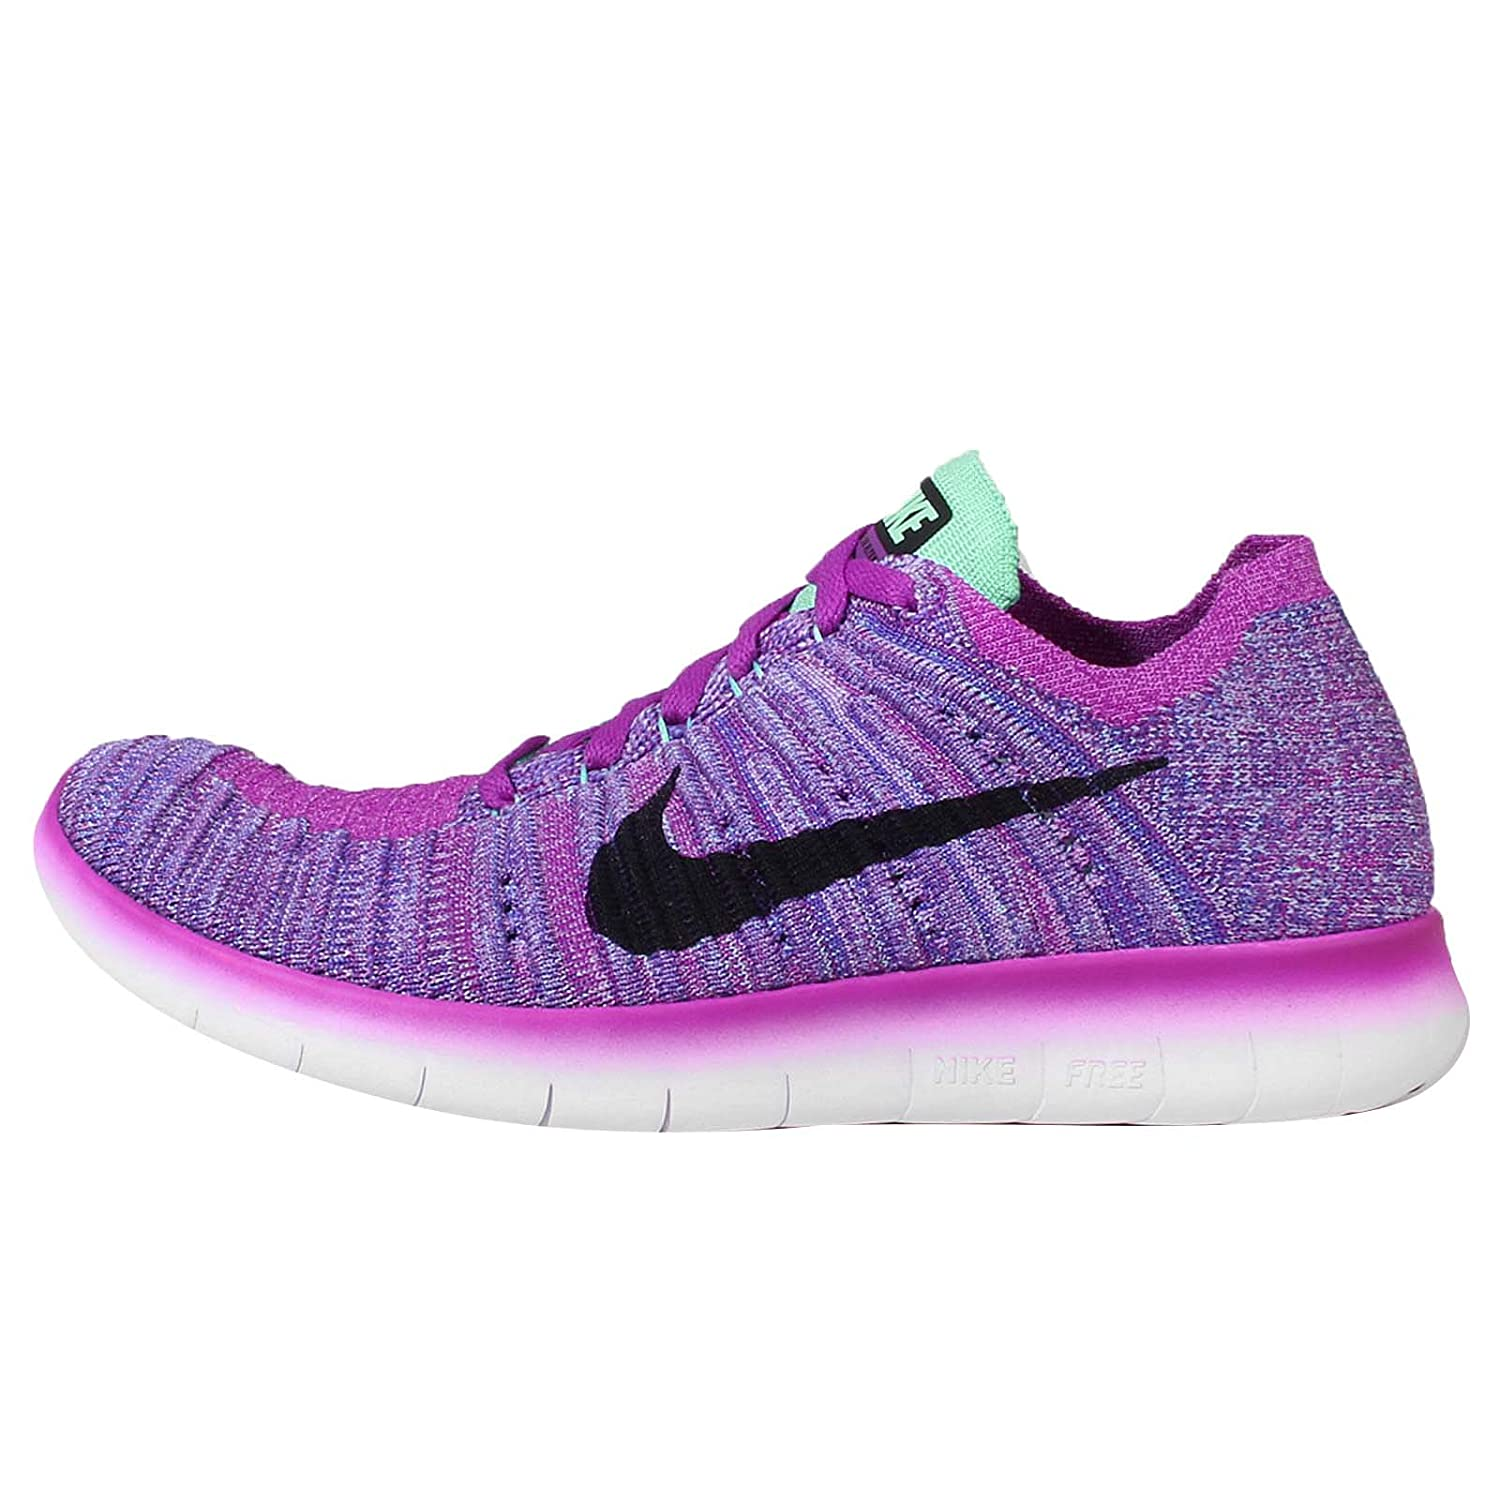 best website b8a32 b2a1b Nike Free Rn Flyknit (Gs), Girls Competition Running Shoes